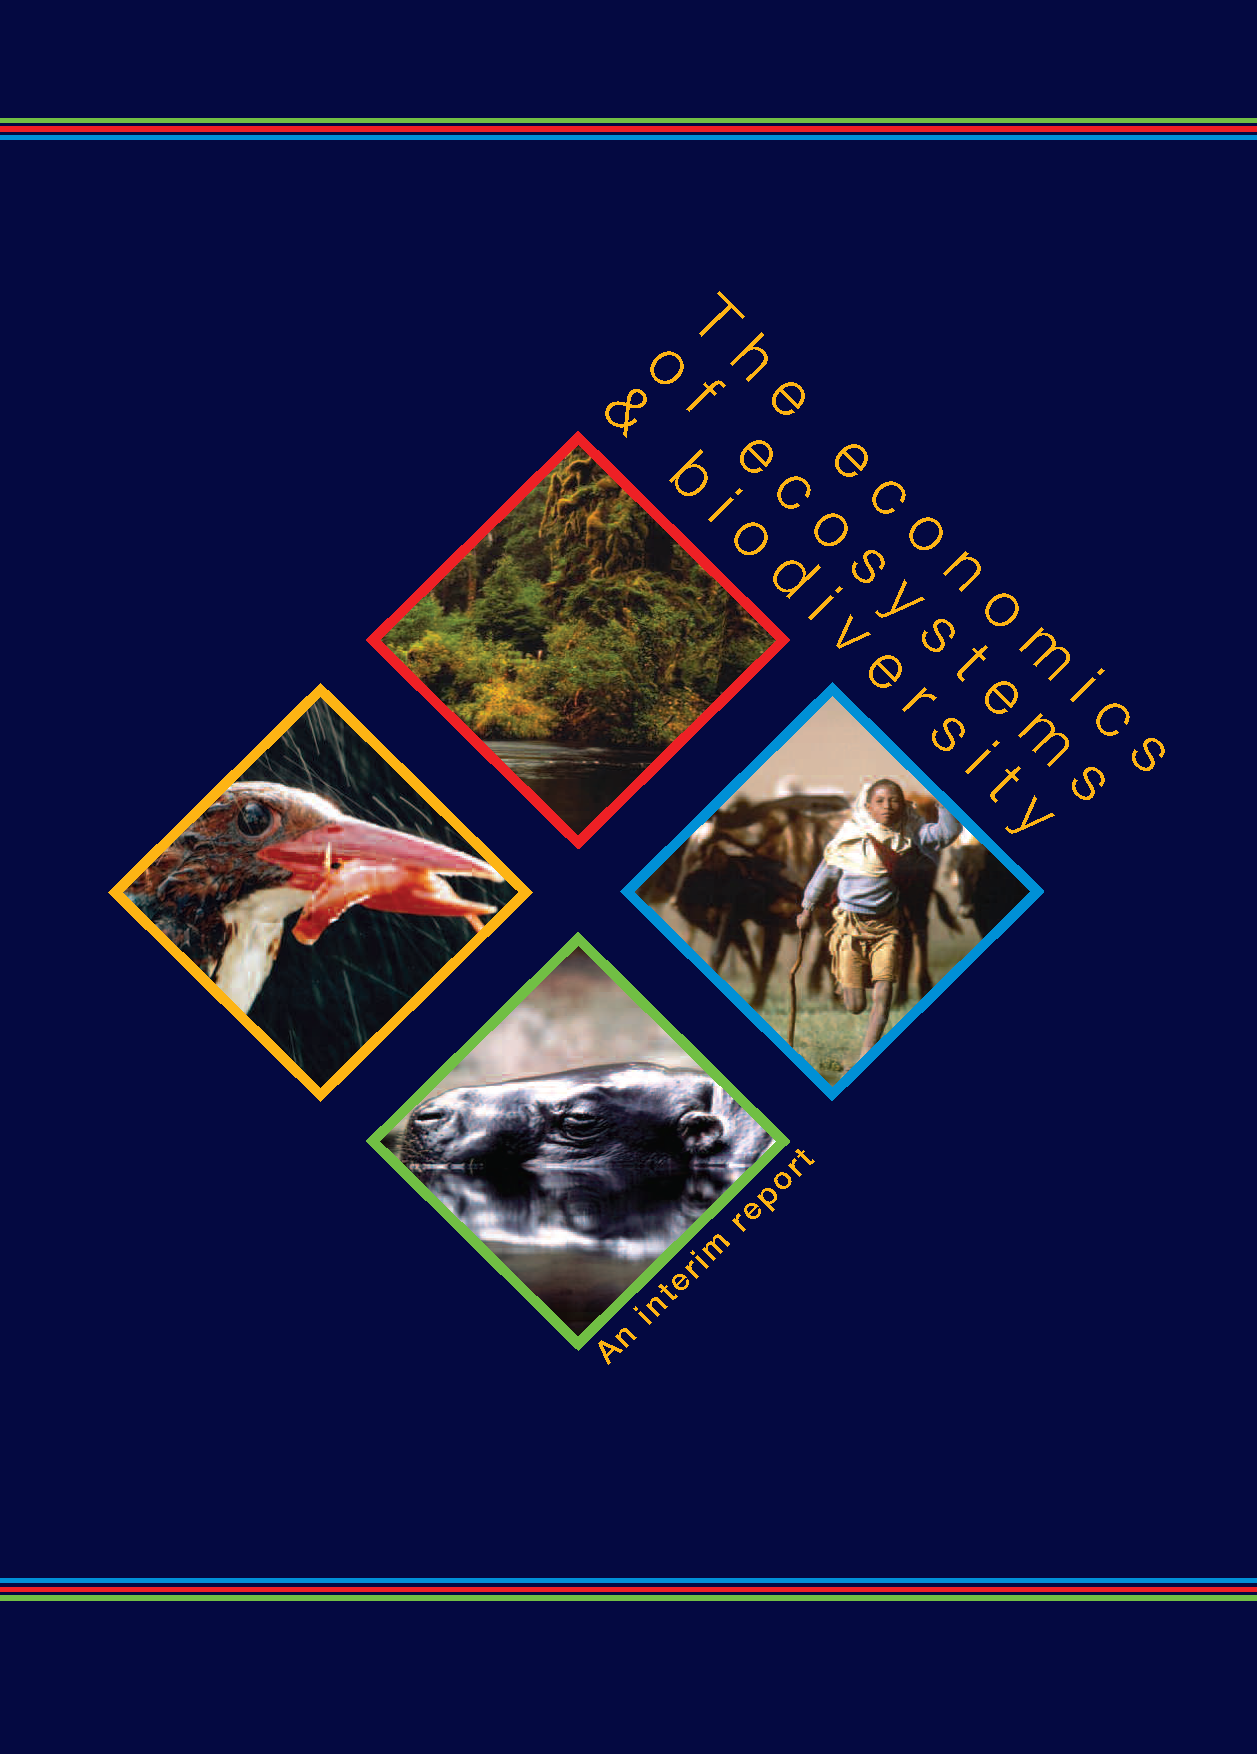 Capa da The economics of ecosystems  and biodiversity